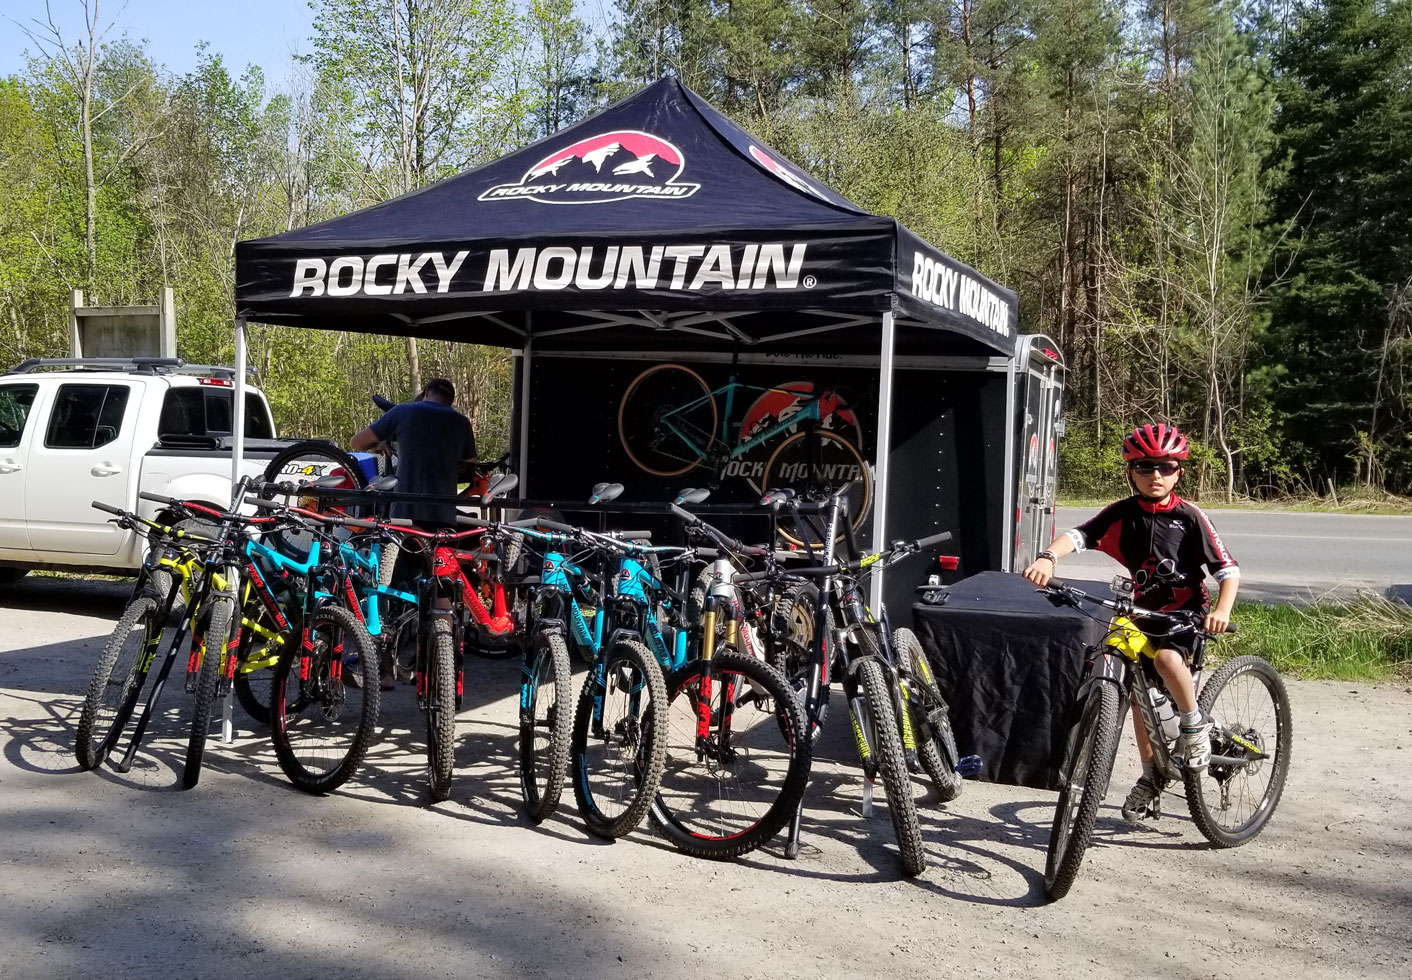 The Rocky Mountain demo drew people from all over to test ride some of the most entertaining platforms available to cyclists today.